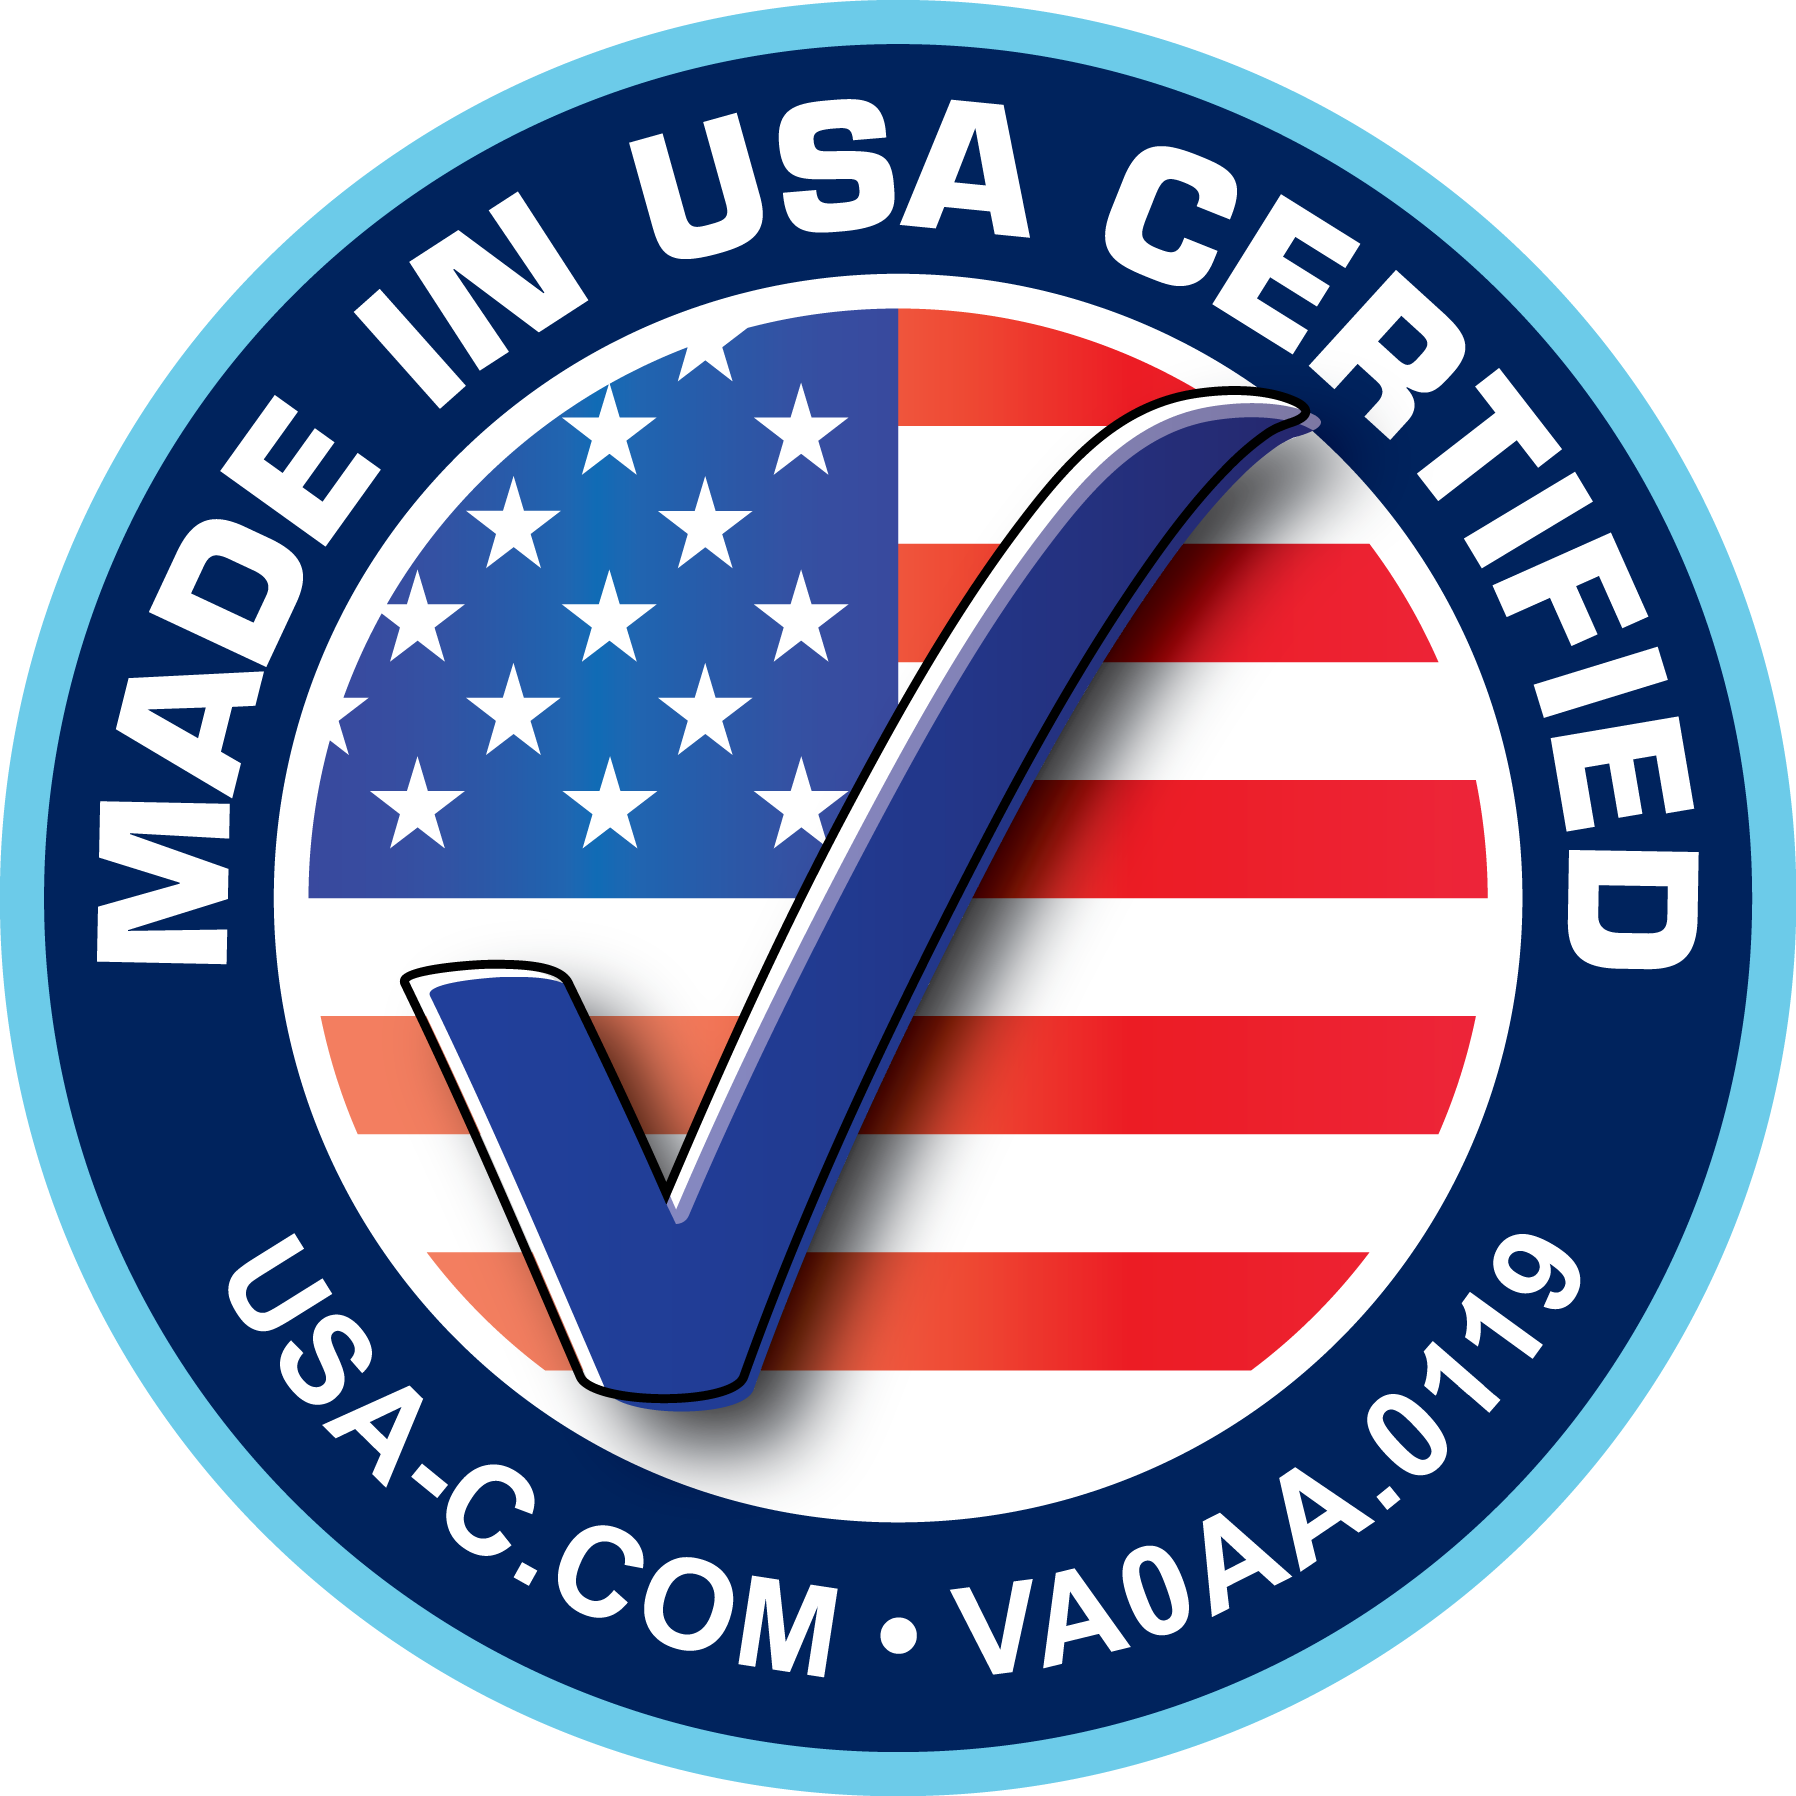 NEW made-in-usa-check-VA0AA 0119.png